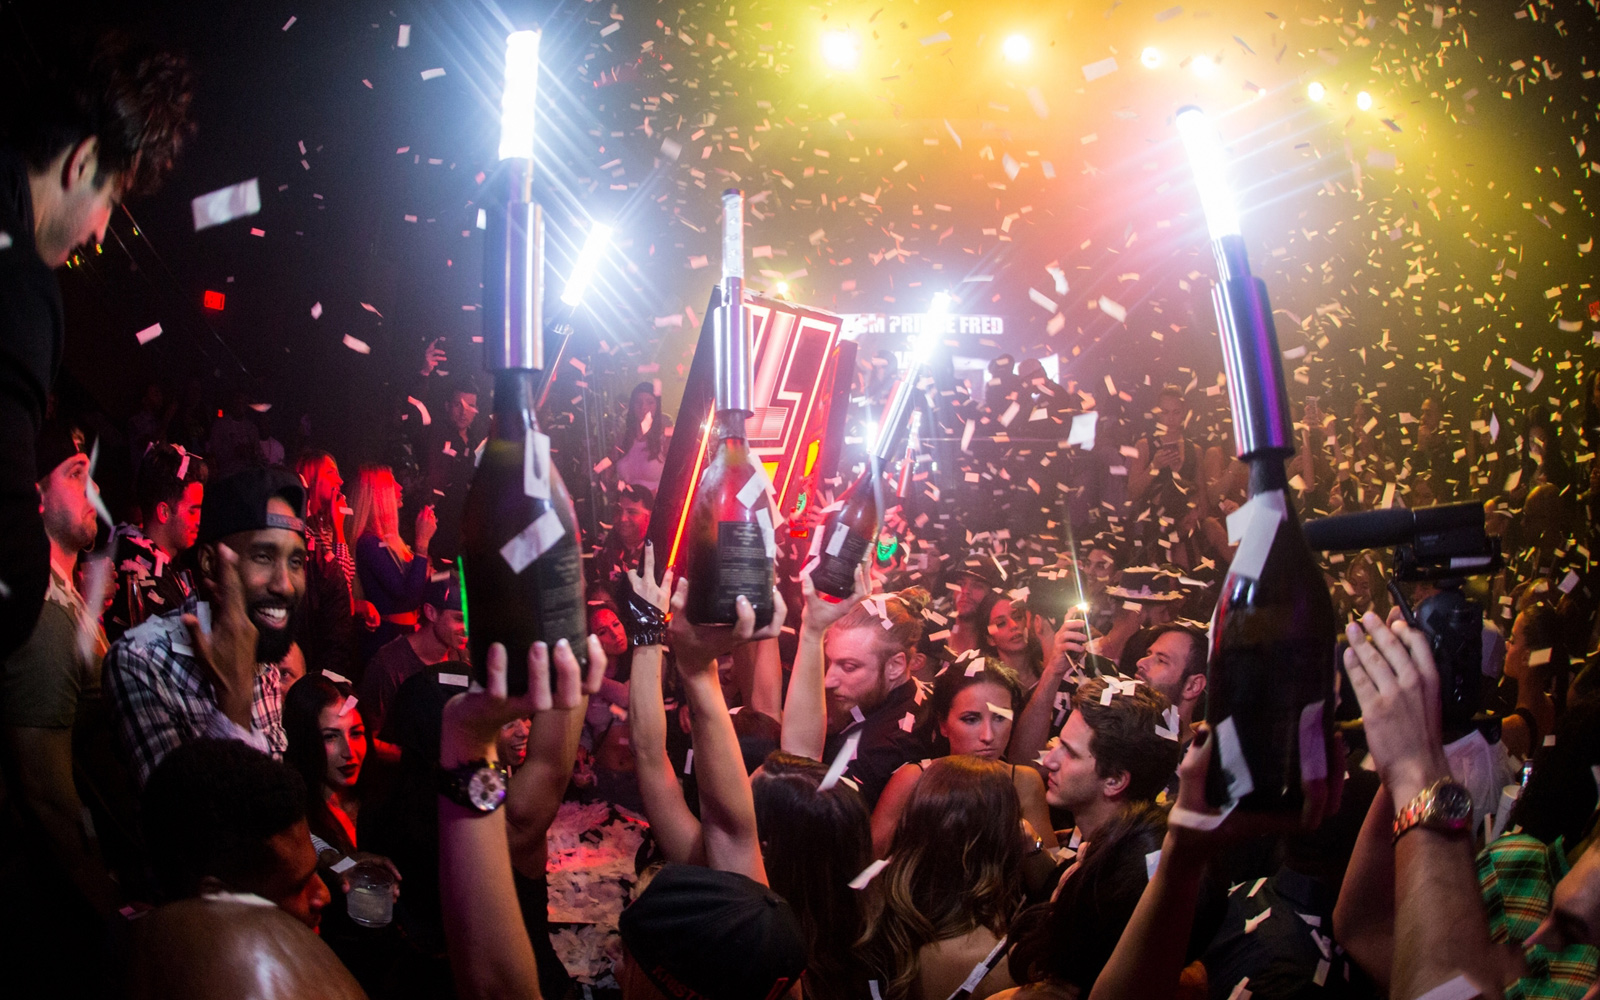 LIV Reopens With Massive LED Spider, Travis Scott, Skrillex & Lil Wayne